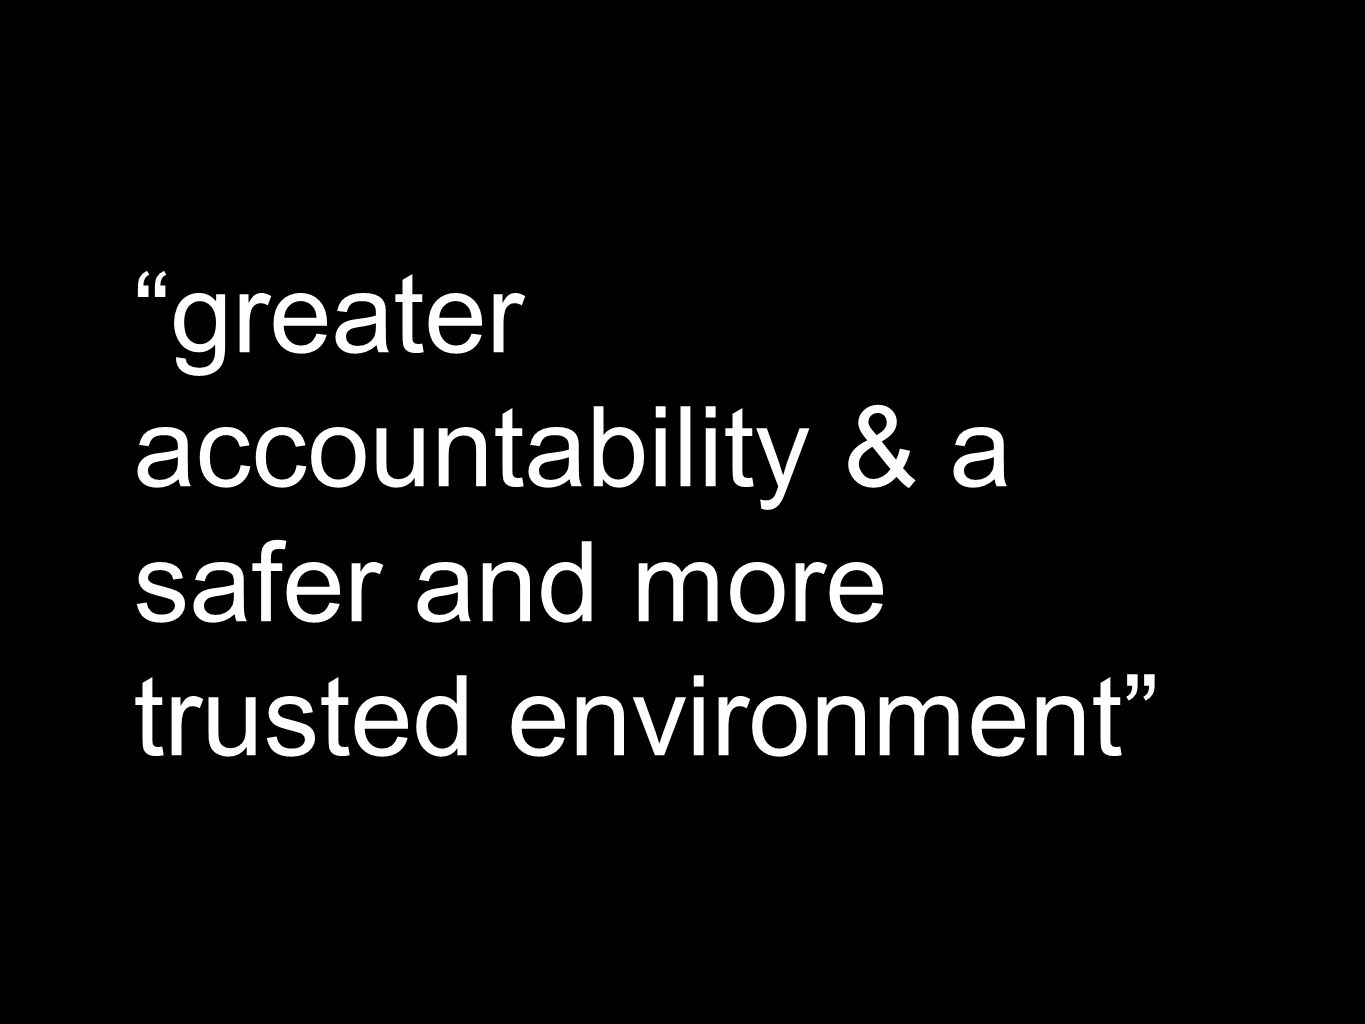 greater accountability & a safer and more trusted environment